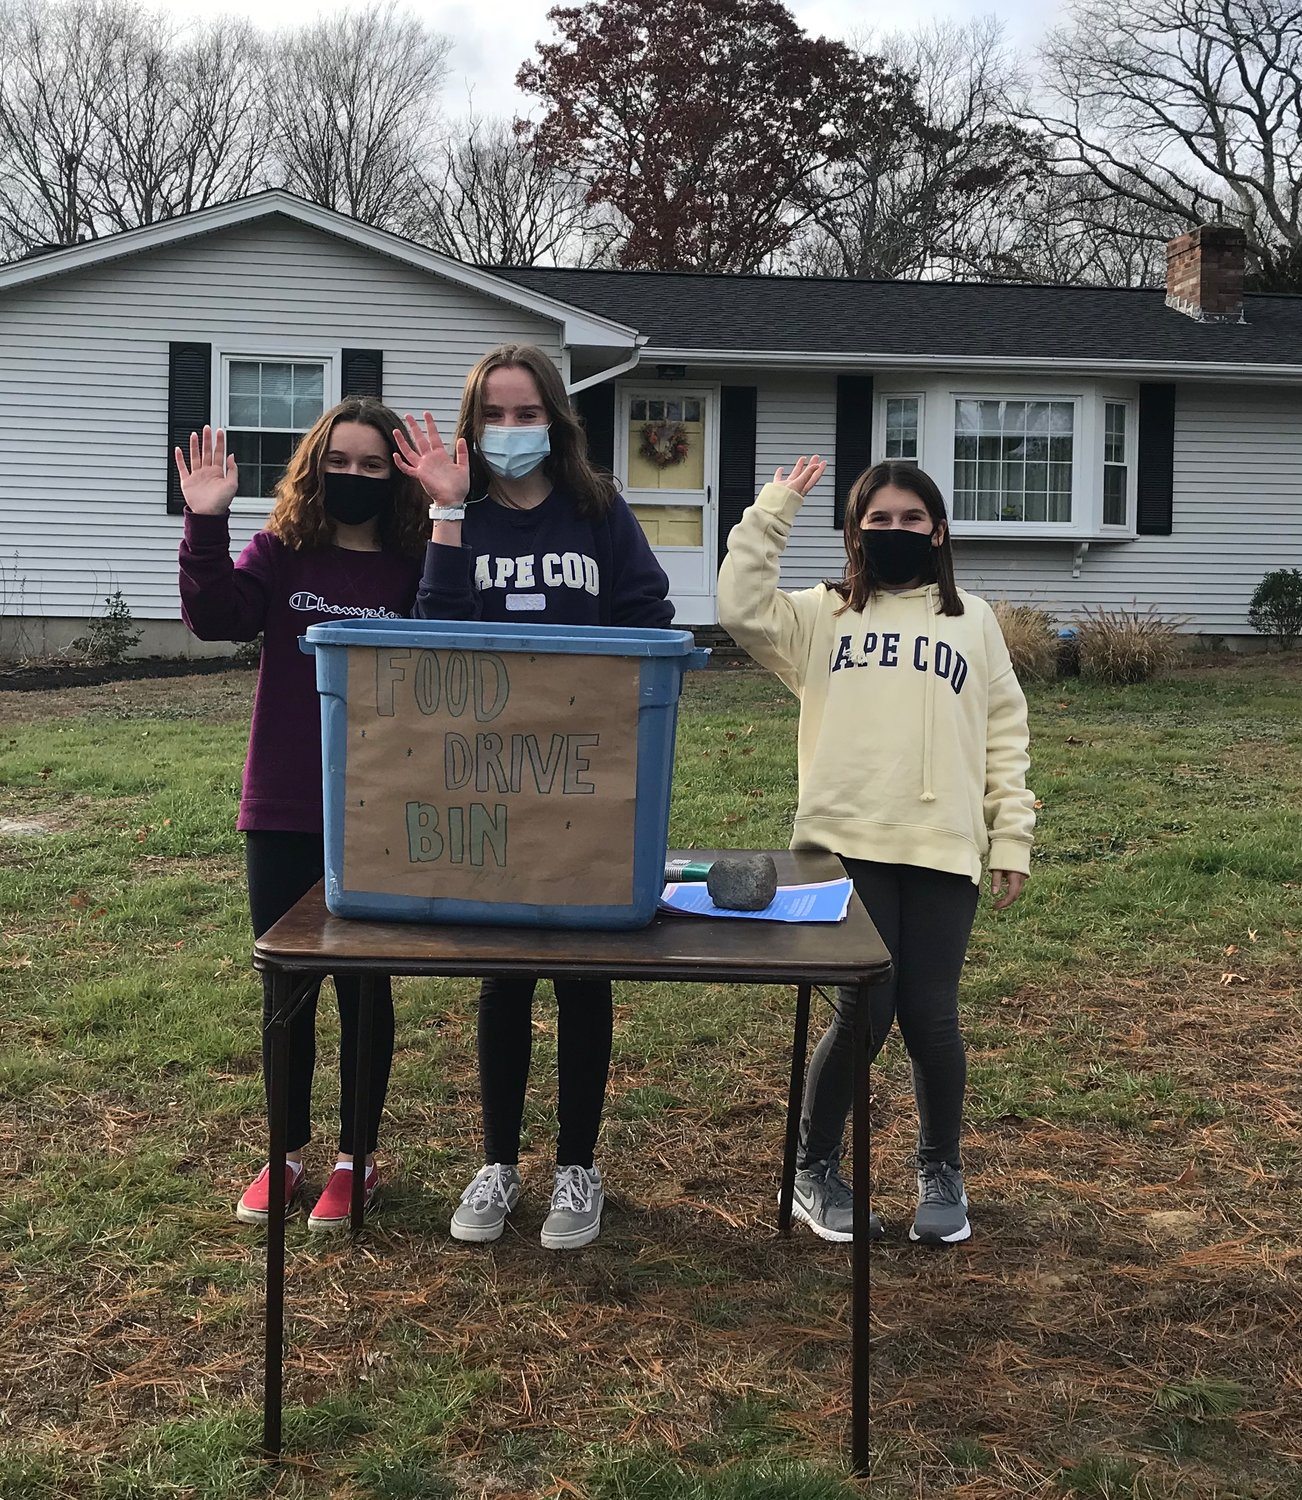 Hailey, Cadynce, and Cassidy hold Spread Kindness Food Drive